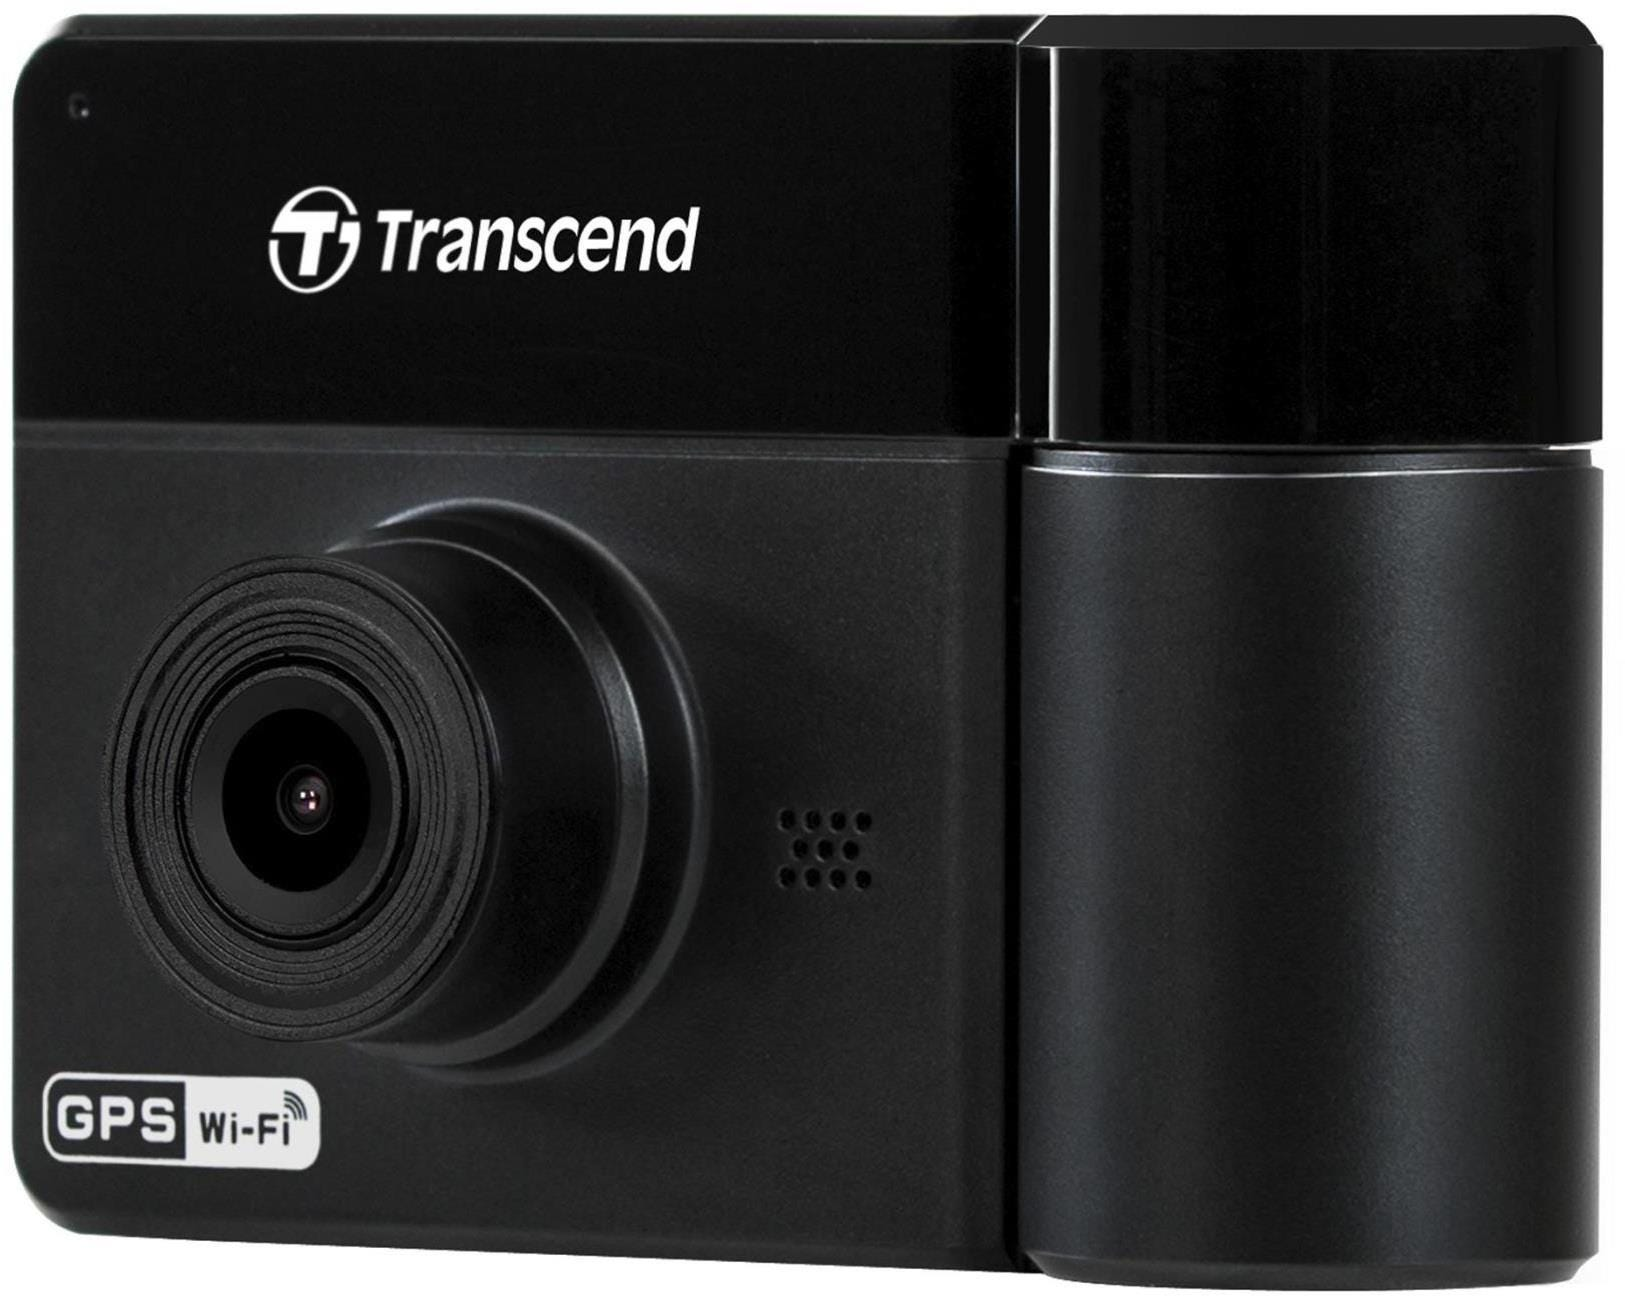 Transcend DrivePro 550 Full HD Dual Lens Dash Cam with Free MicroSD Memory Card